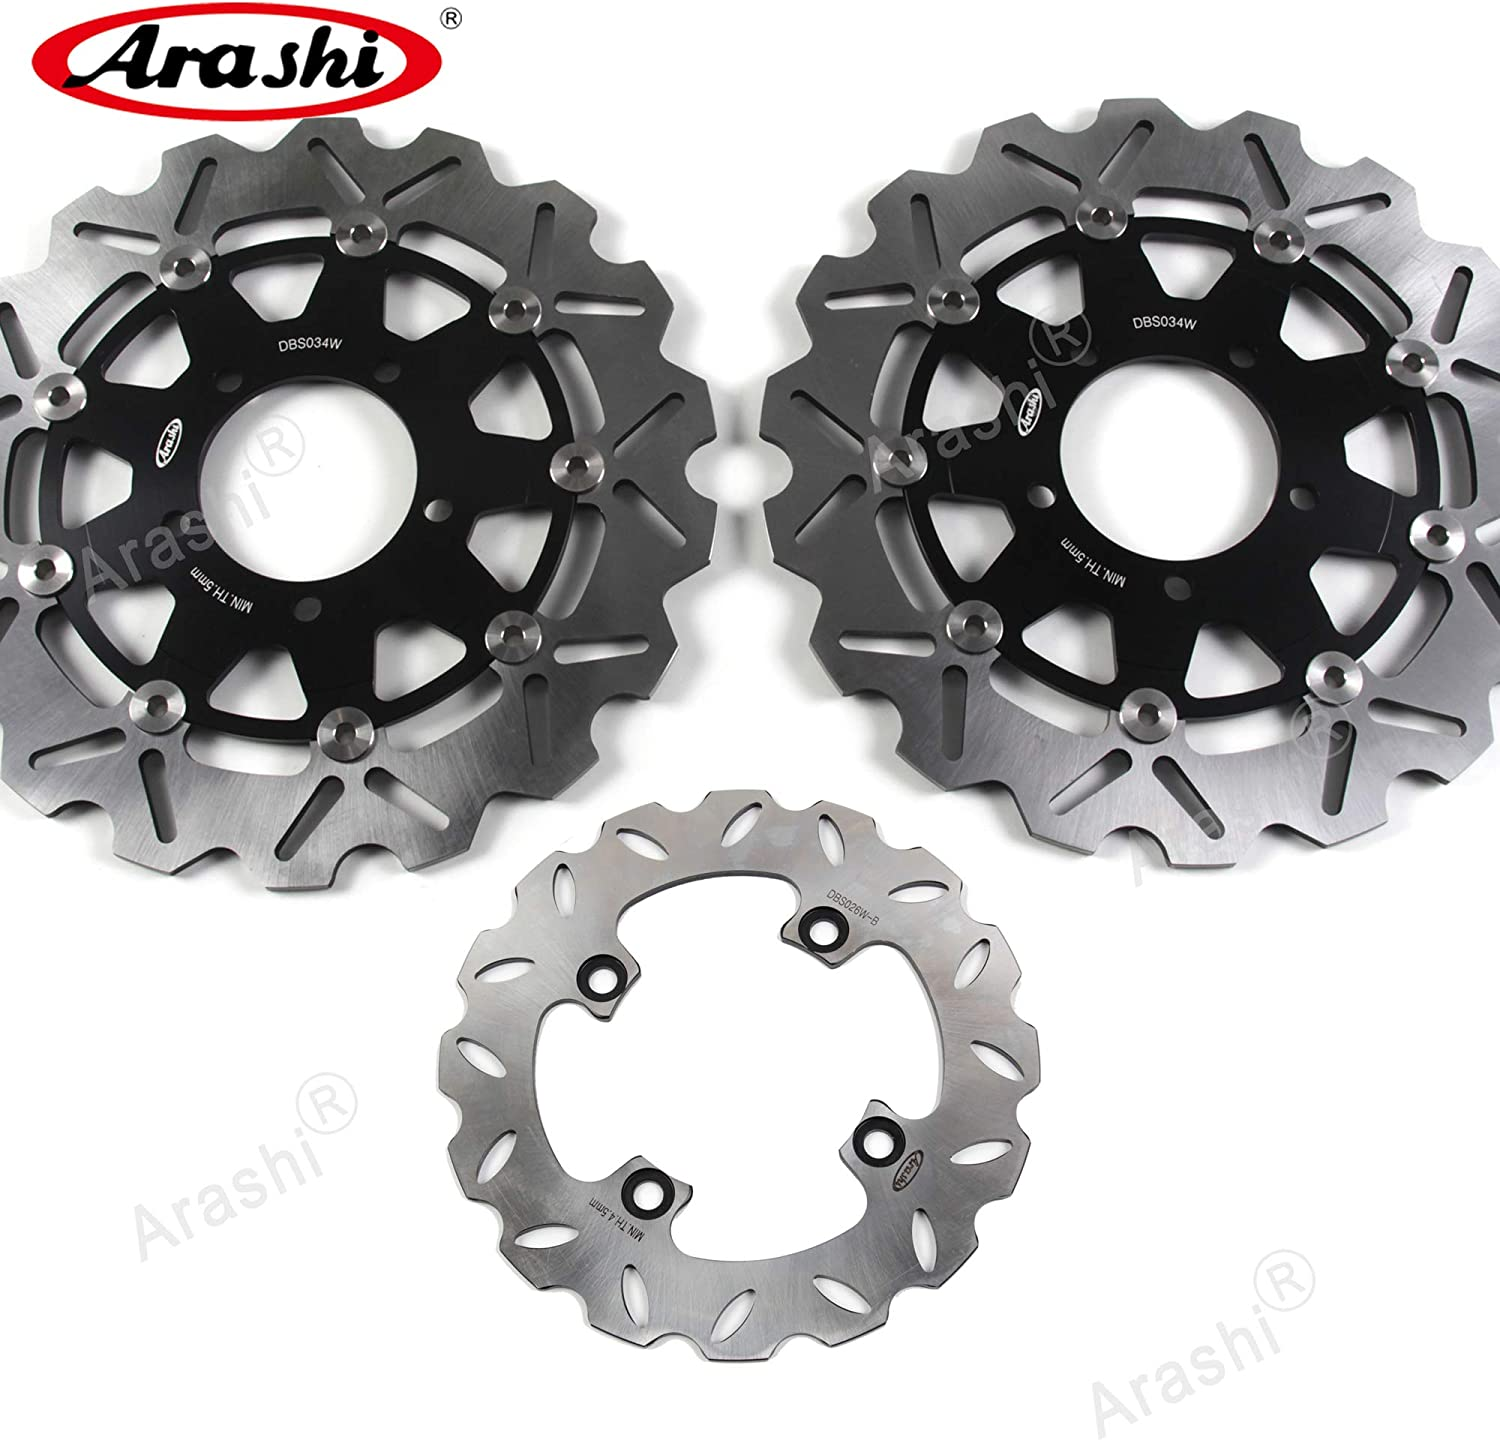 Arashi Brake Disc Rotors Front and Rear for Kawasaki Ninja ZX636 ZX6RR 2005-2006 / ZX6R 2007-2015 / ZX10R 04-07 / ER6N ER6F 06-15 / Versys 650 07-14 Motorcycle Accessories Black ZX-6R ZX-10R